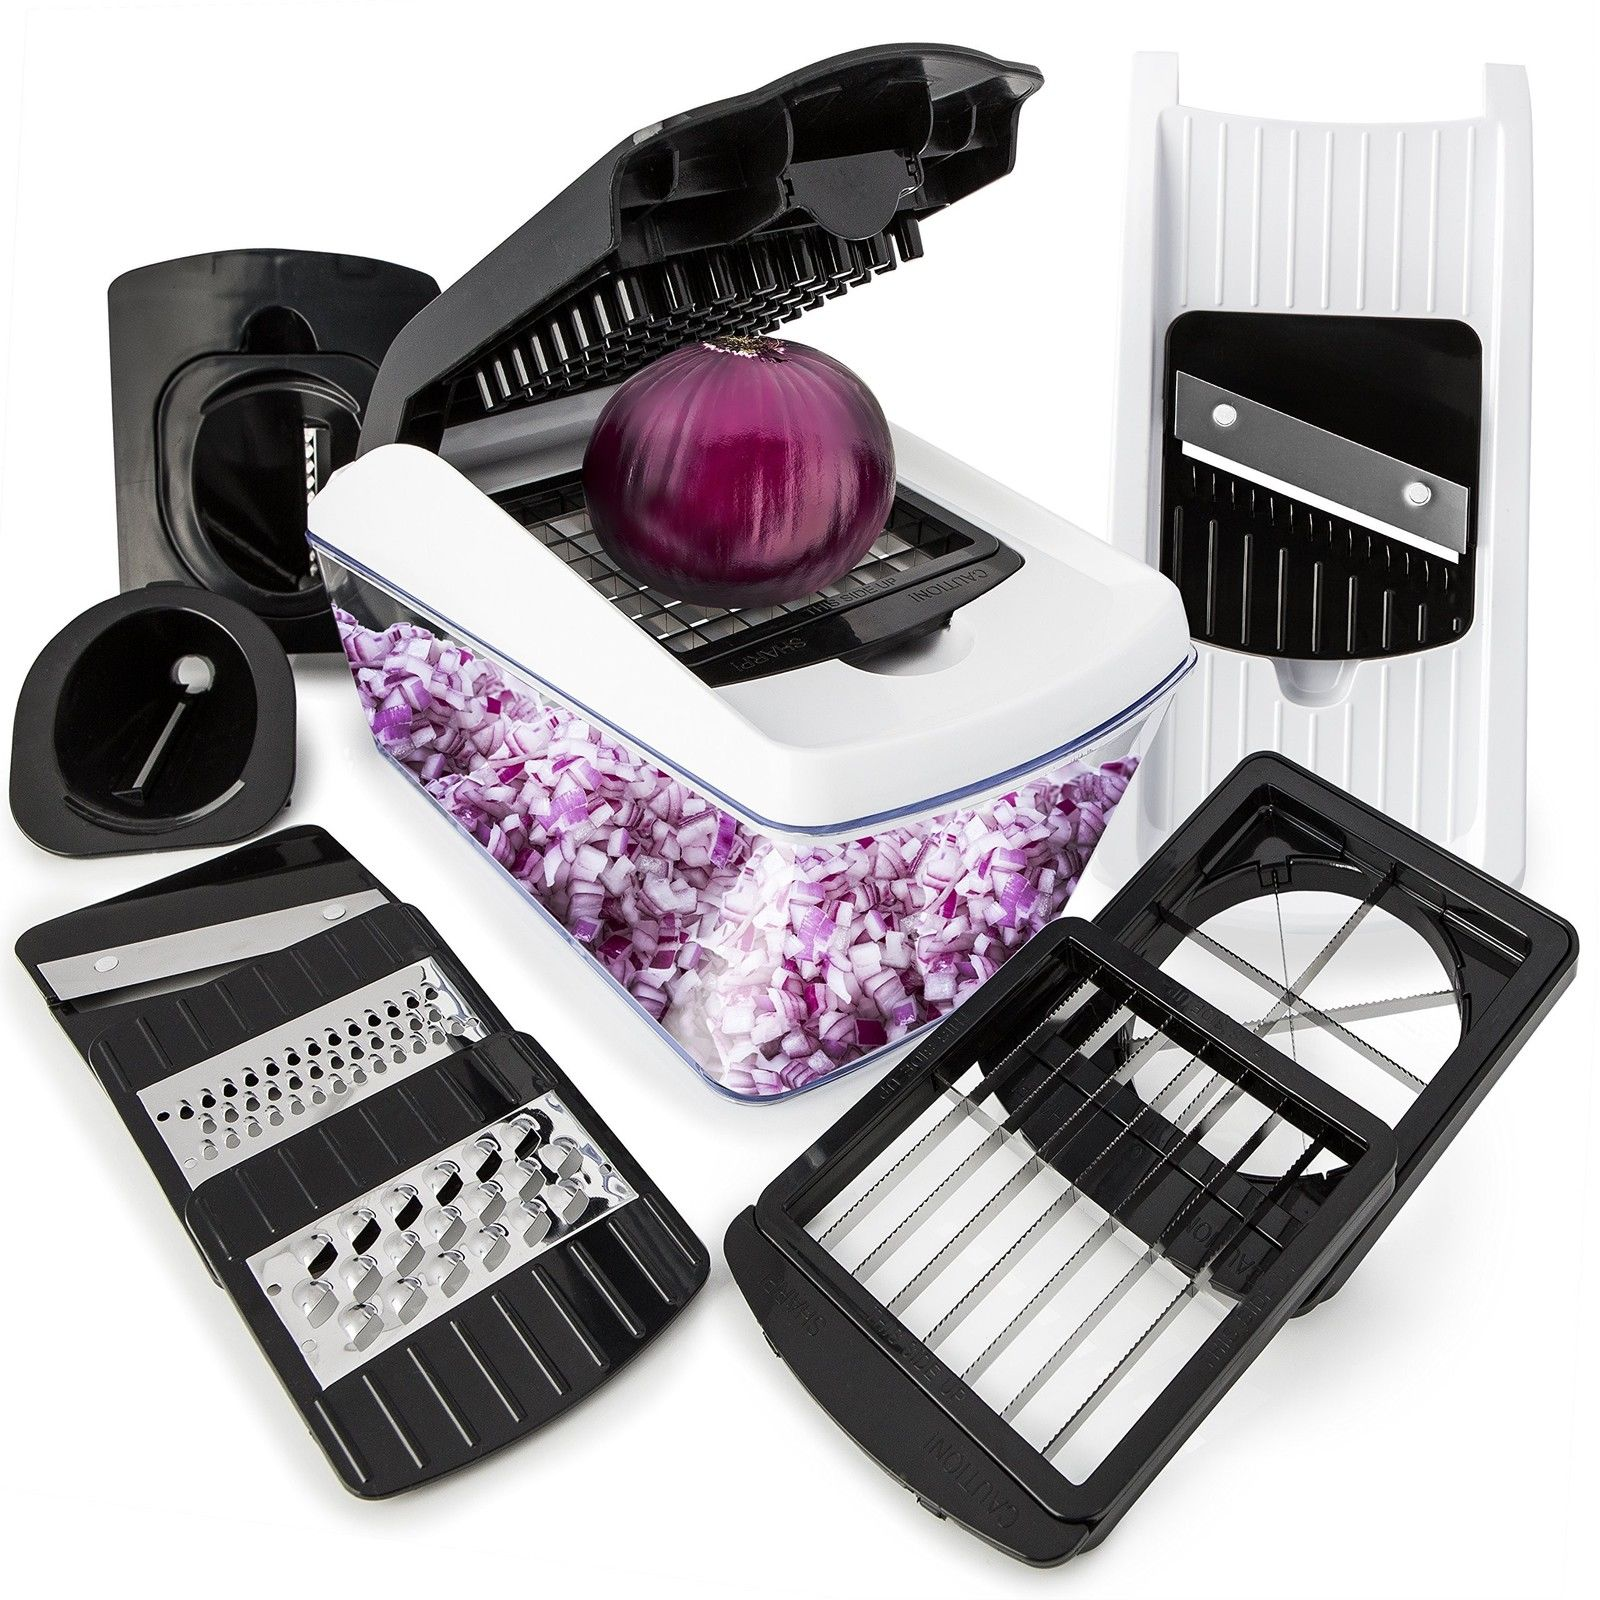 Vegetable Chopper Mandoline Spiralizer Slicer - 8-in-1 Kitchen Pro